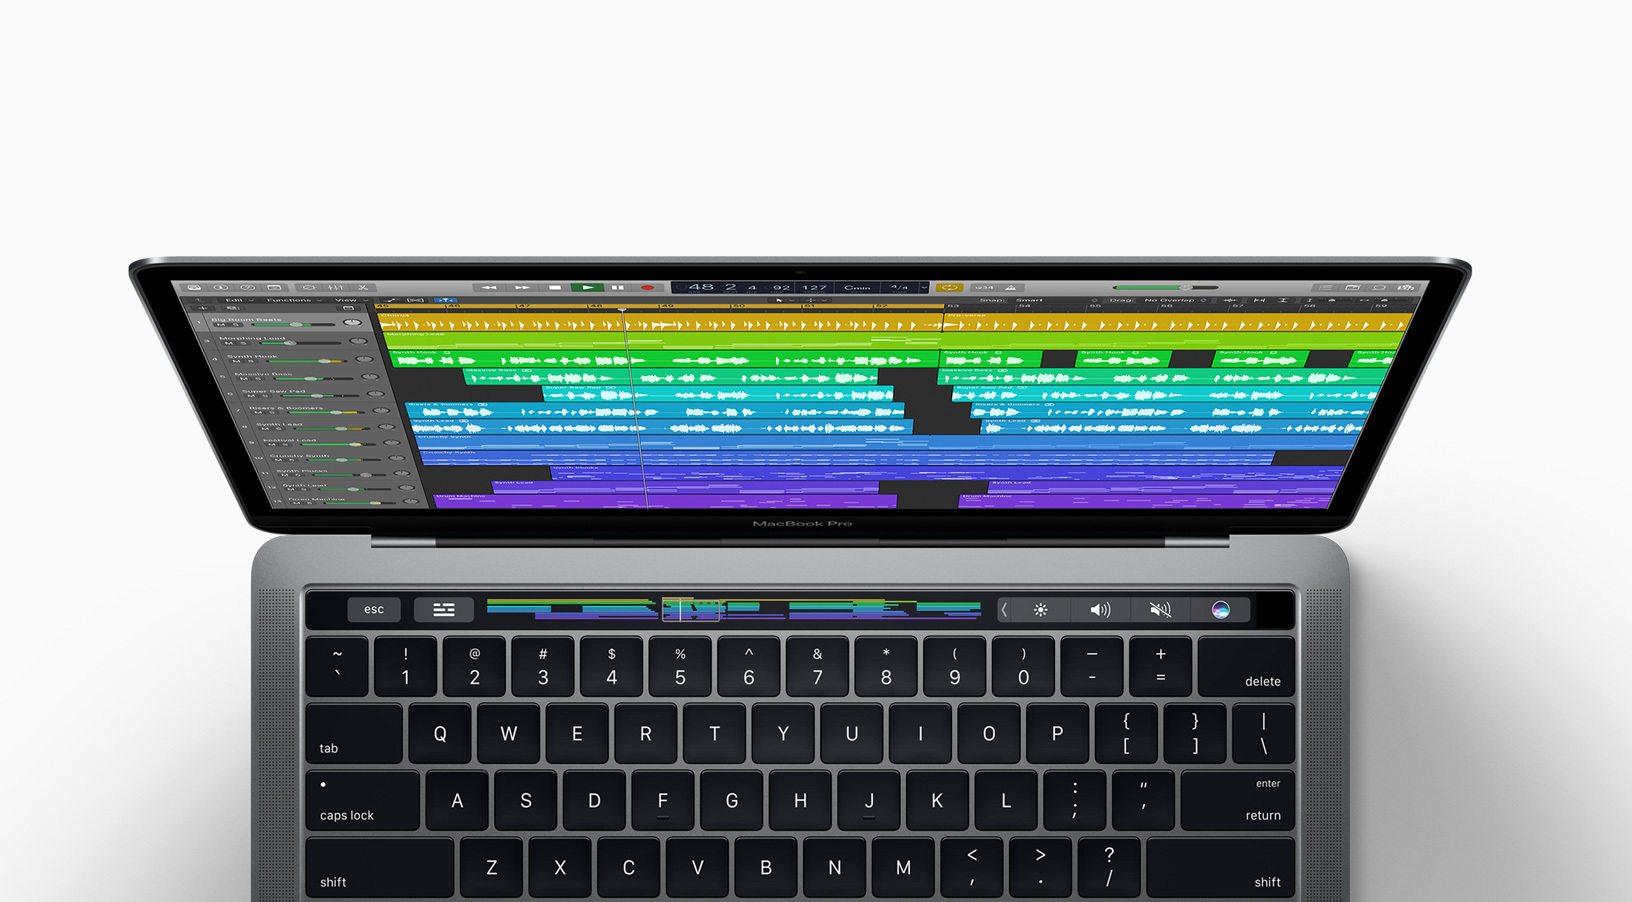 GarageBand and Logic Pro X Music Apps Get Major Updates